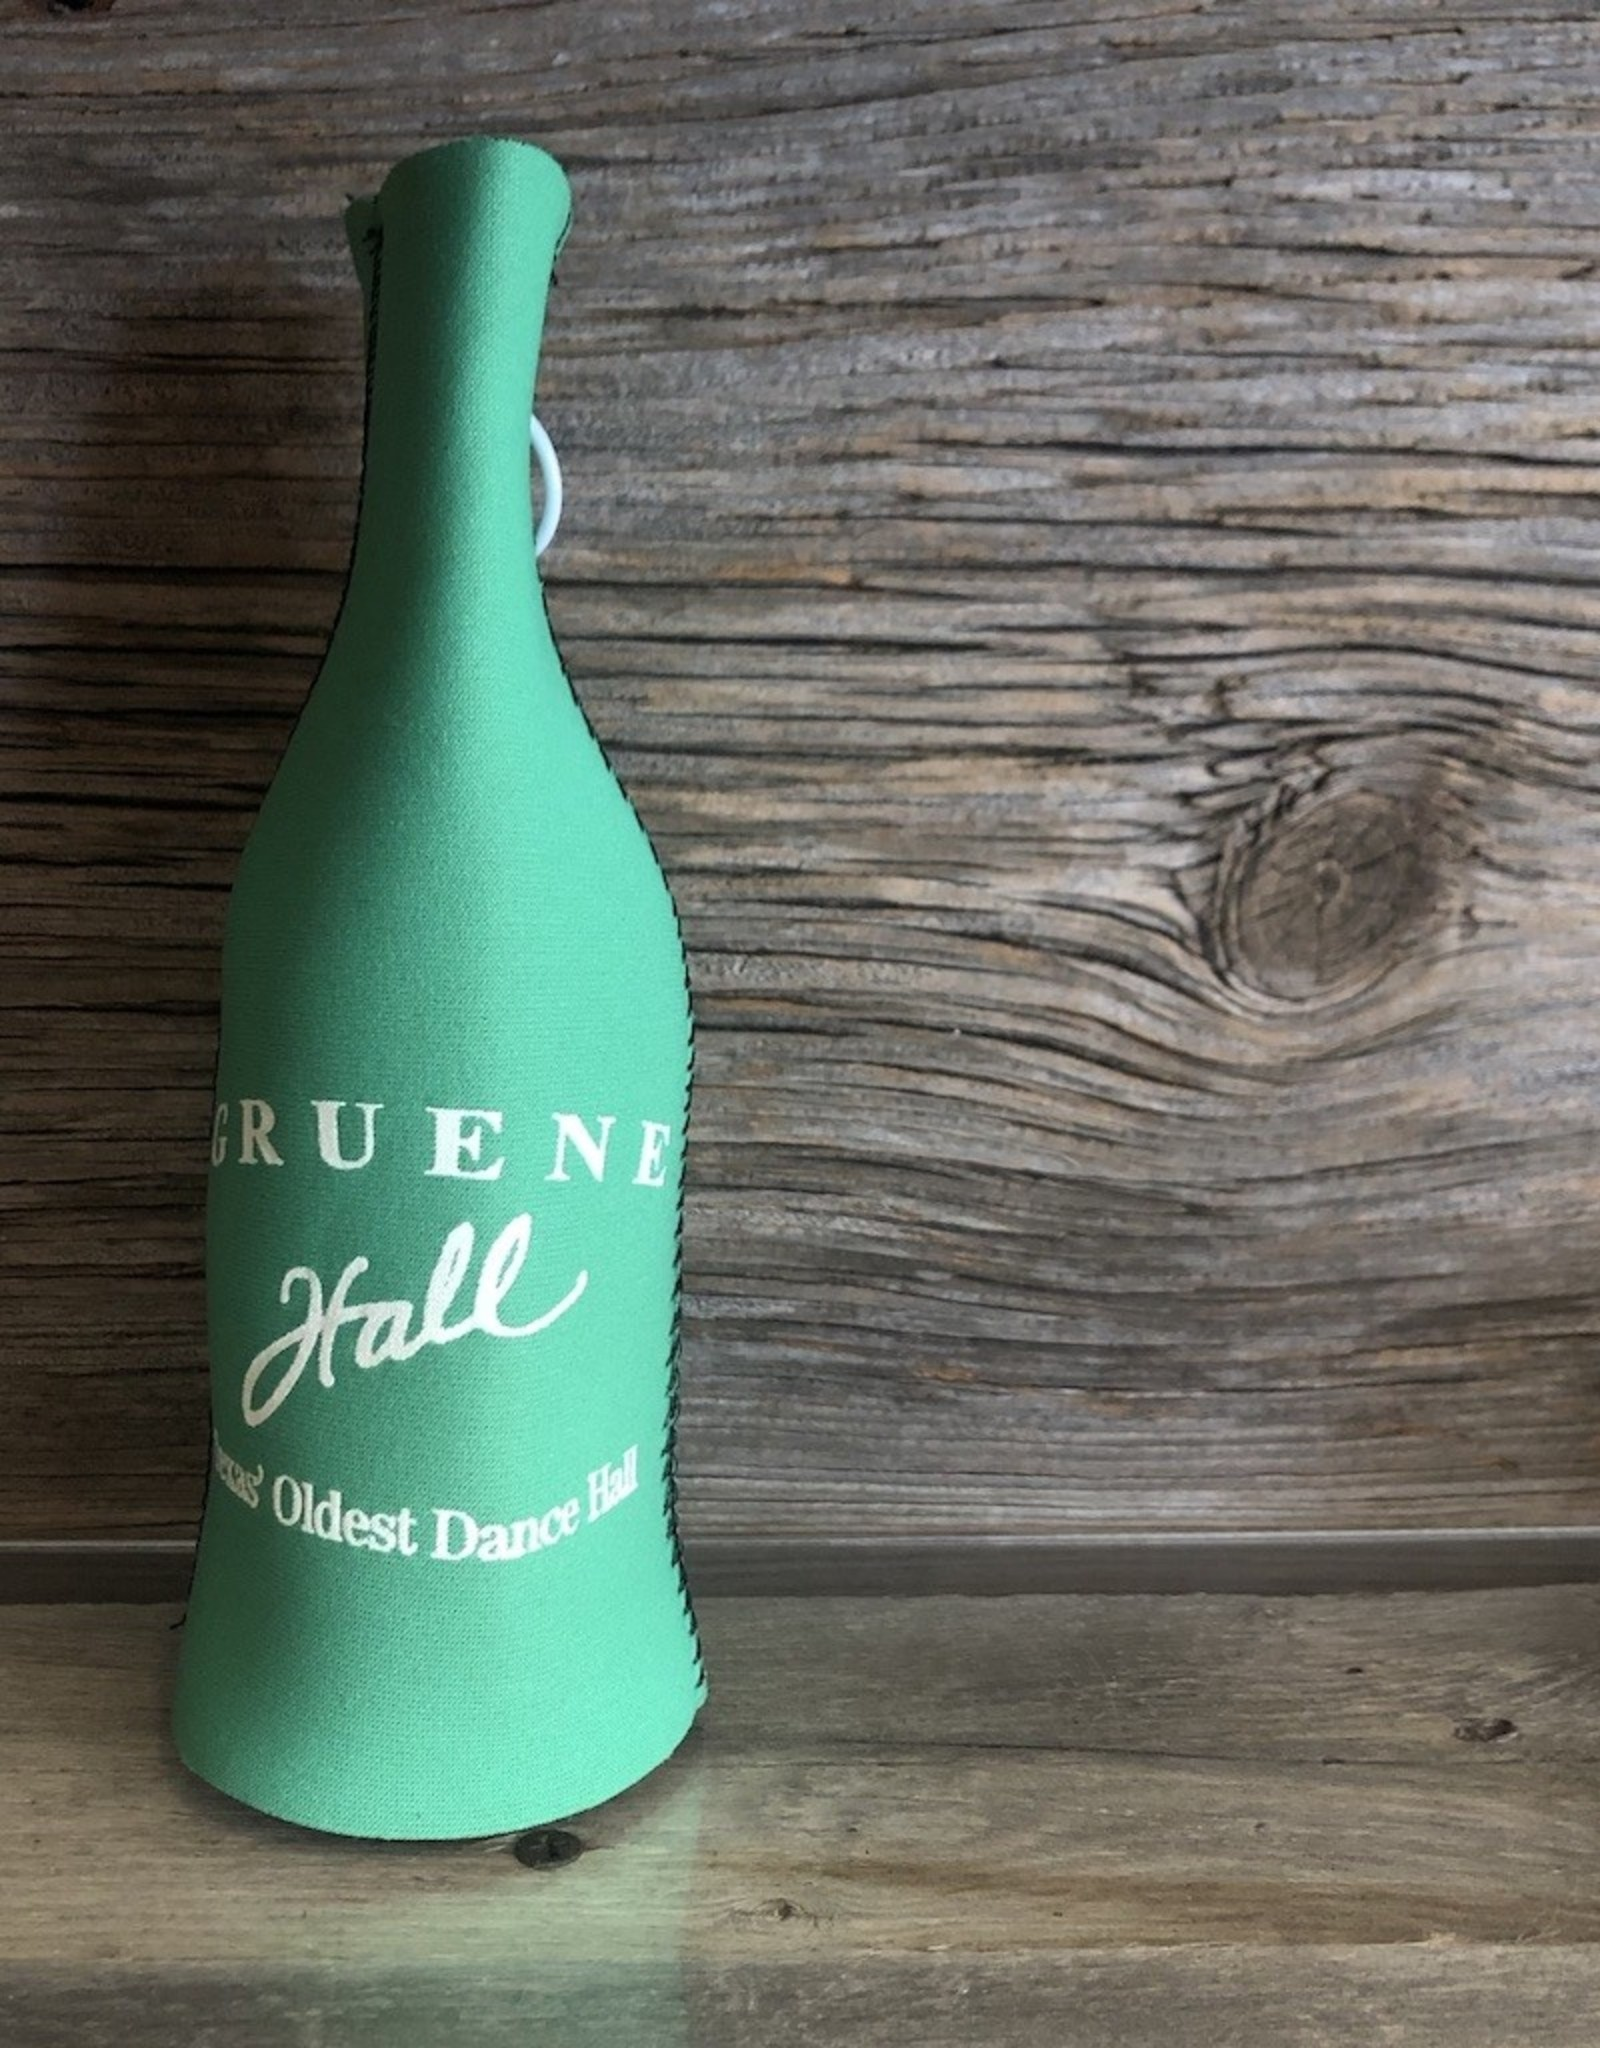 KOOZIE-GRUENE HALL BOTTLE